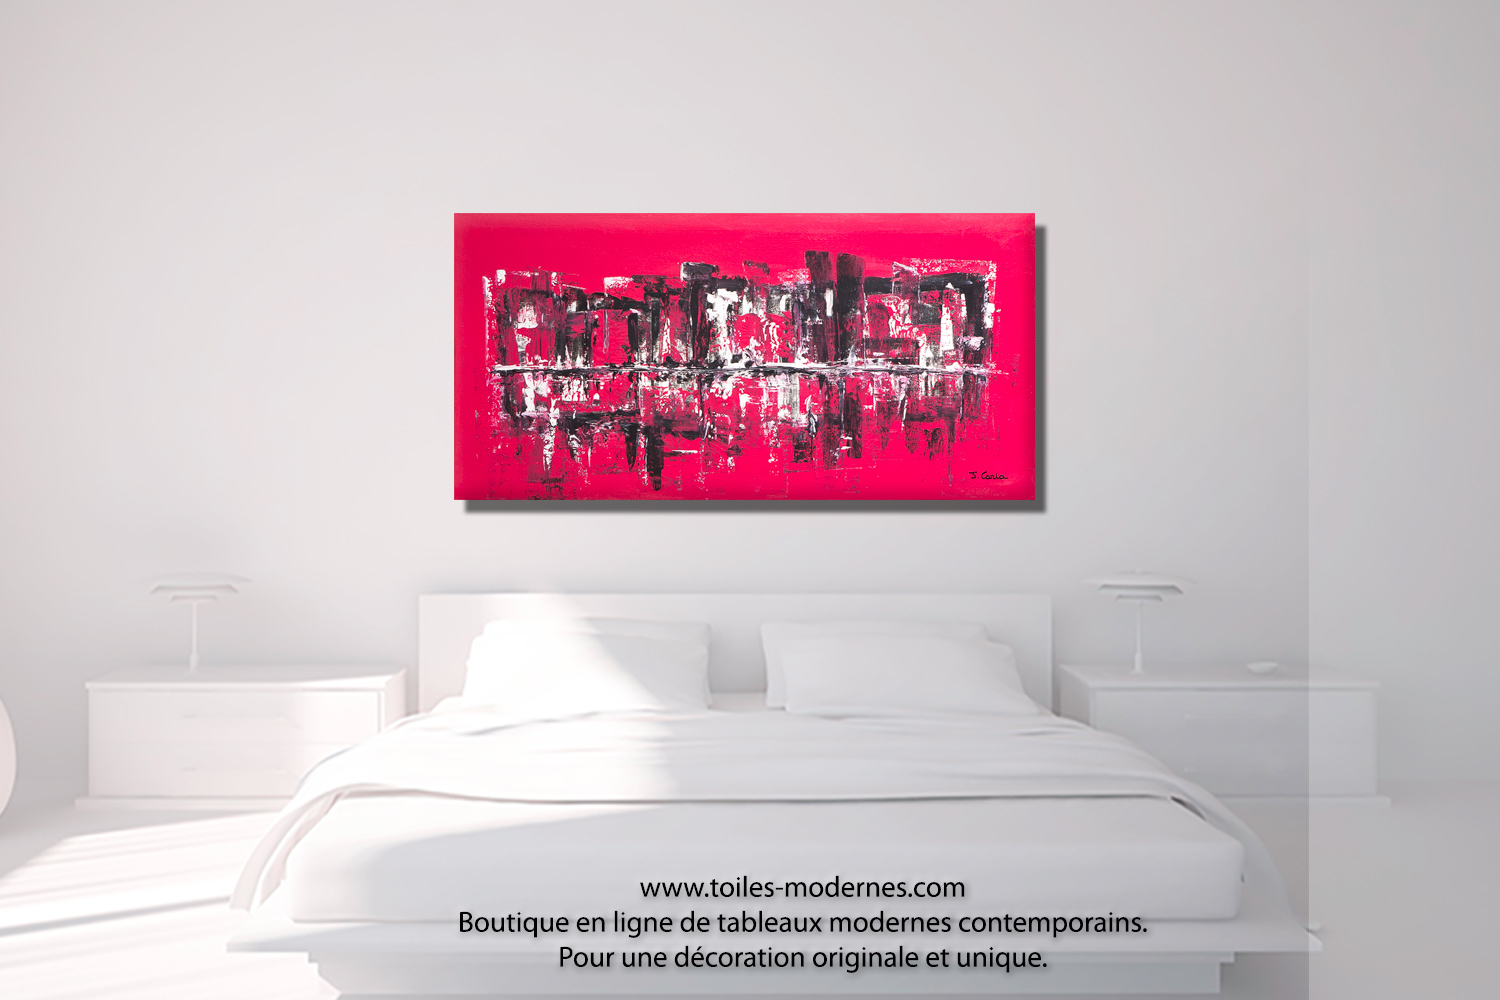 grand panoramique moderne rouge framboise tableau ville abstraite d coration luxueuse tendance. Black Bedroom Furniture Sets. Home Design Ideas